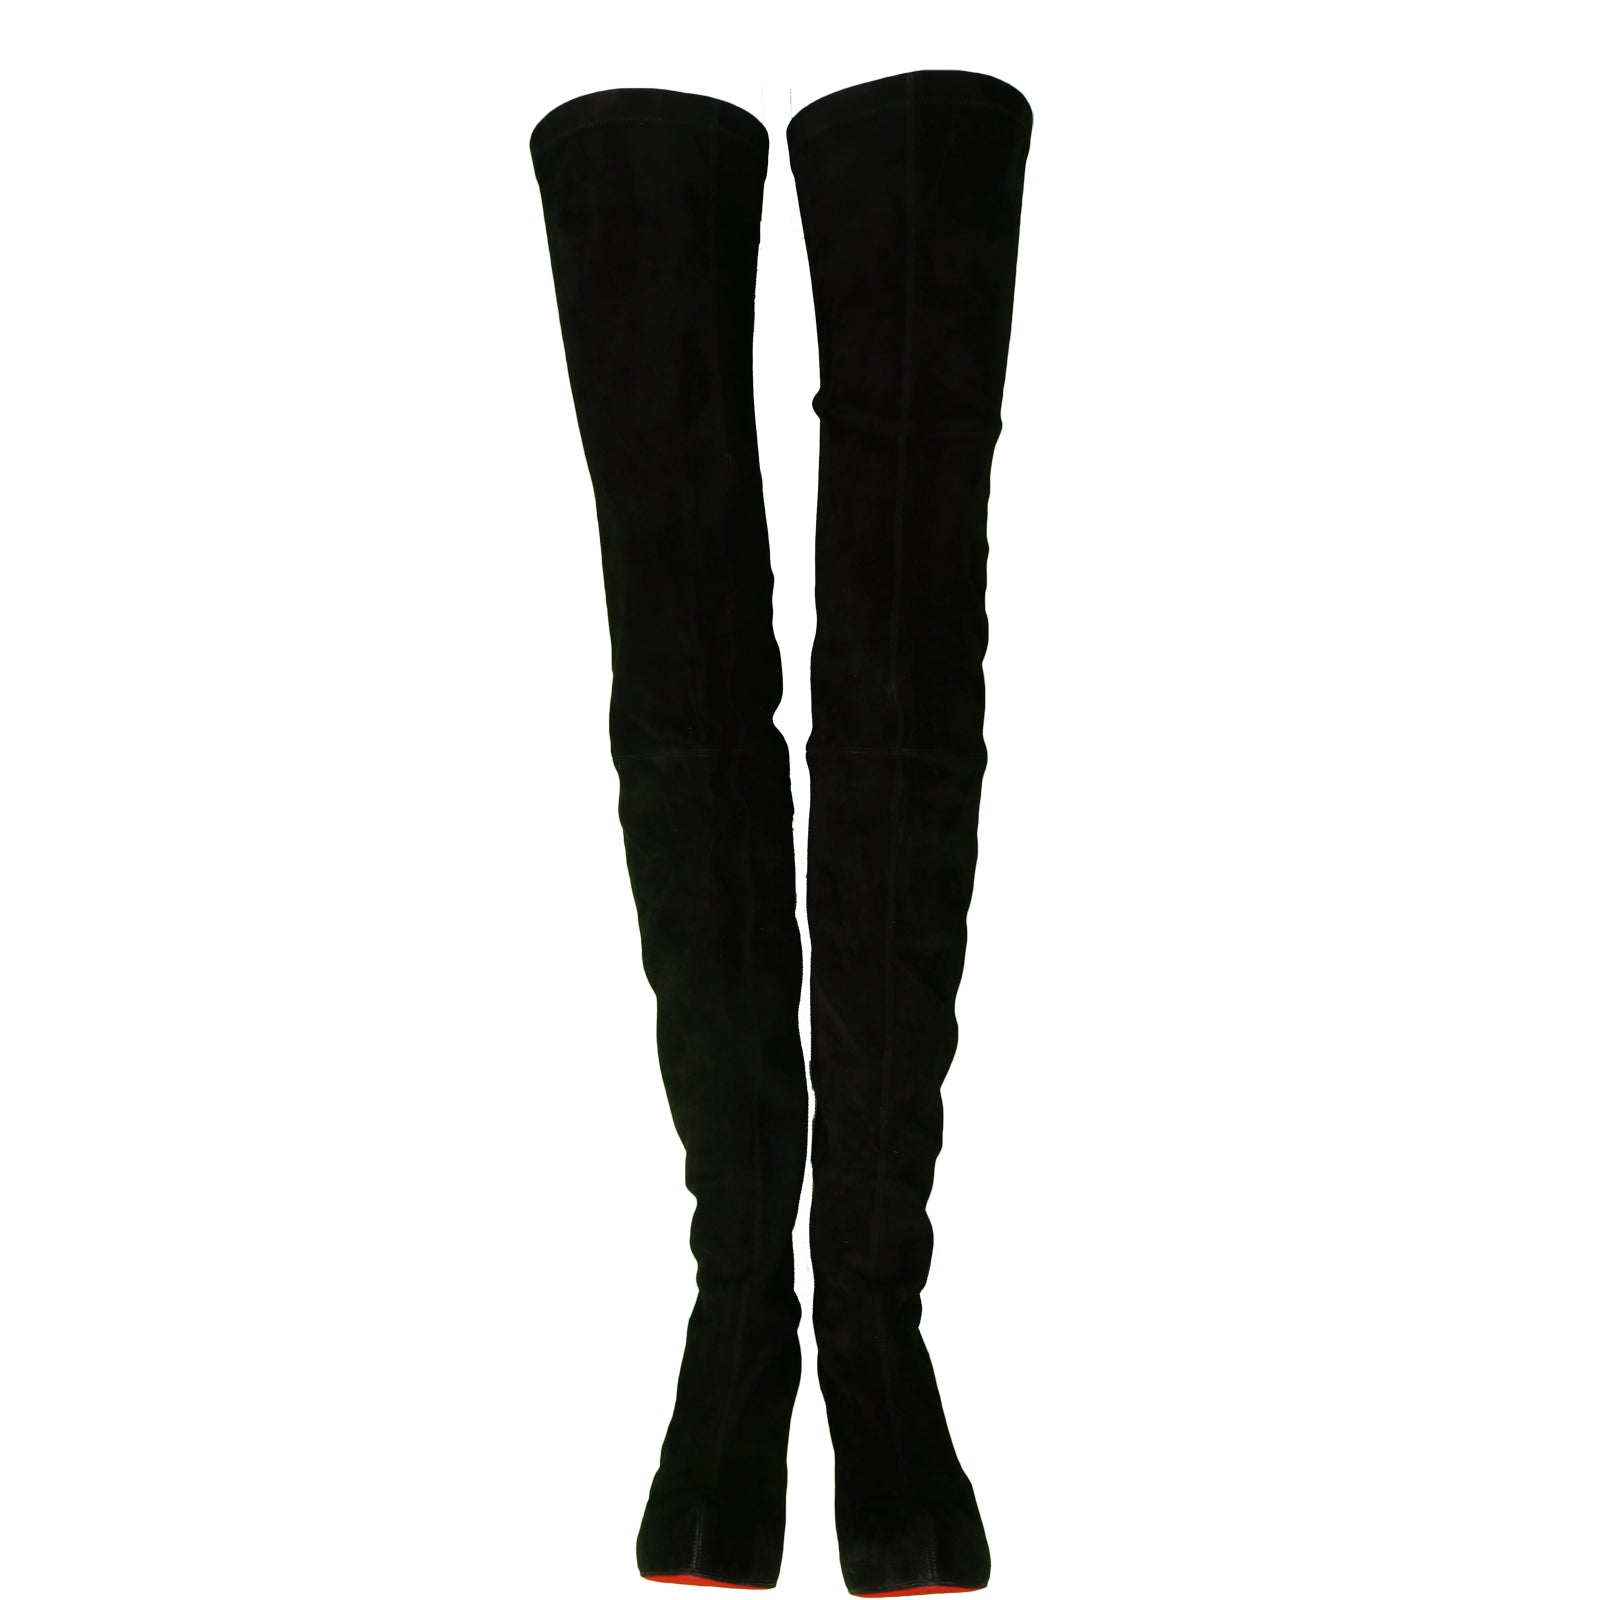 Christian Louboutin Monica 120 Suede Thigh High Boots